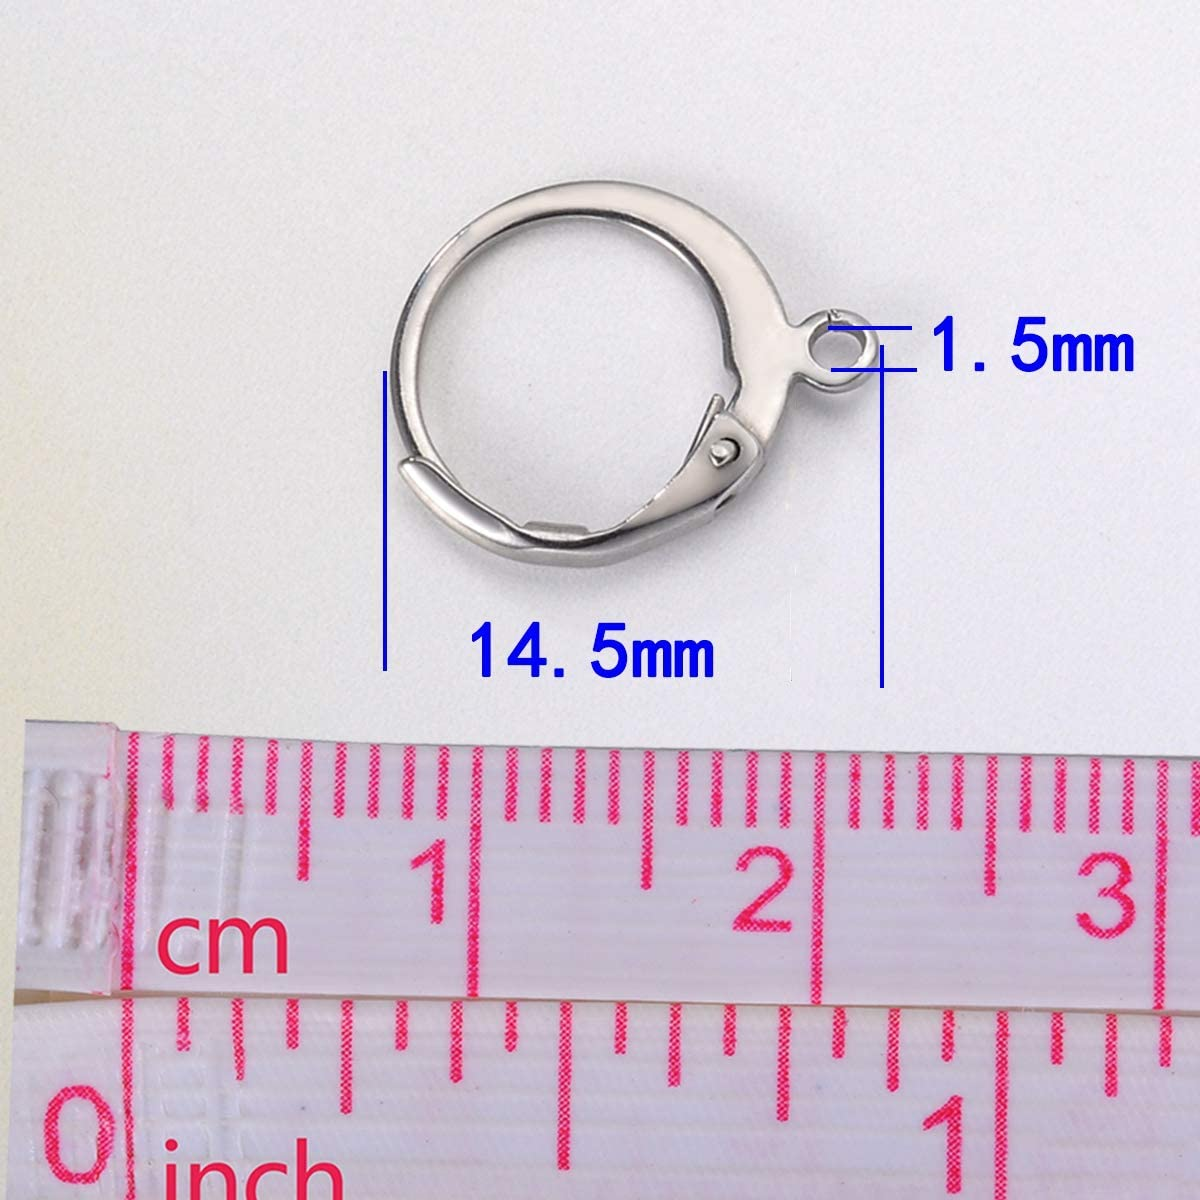 10PCS Stainless Steel Silver Tone Ear Wire Lever Back Open Loop French Earring Hook Jewelry 14.5mmx12mm